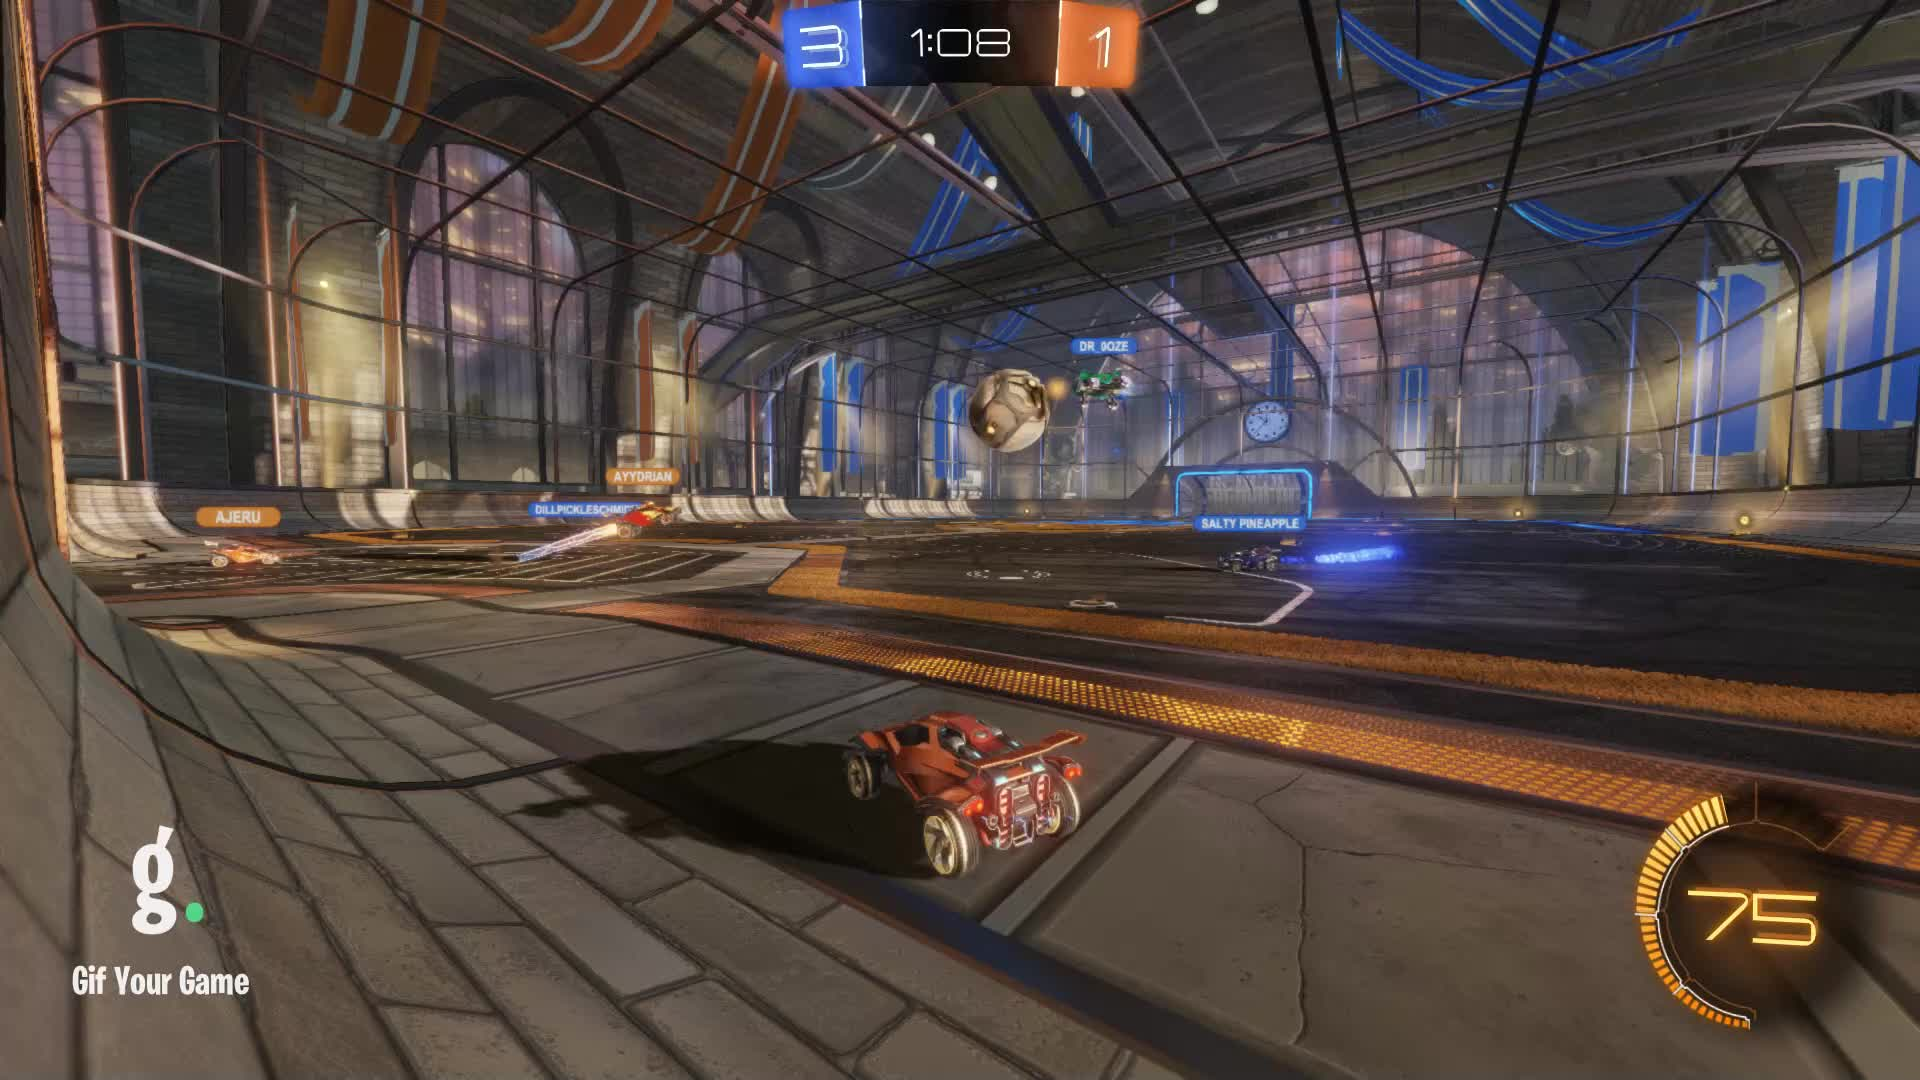 Gif Your Game, GifYourGame, ItWas...Justified, Rocket League, RocketLeague, Save, Save 5: ItWas...Justified GIFs